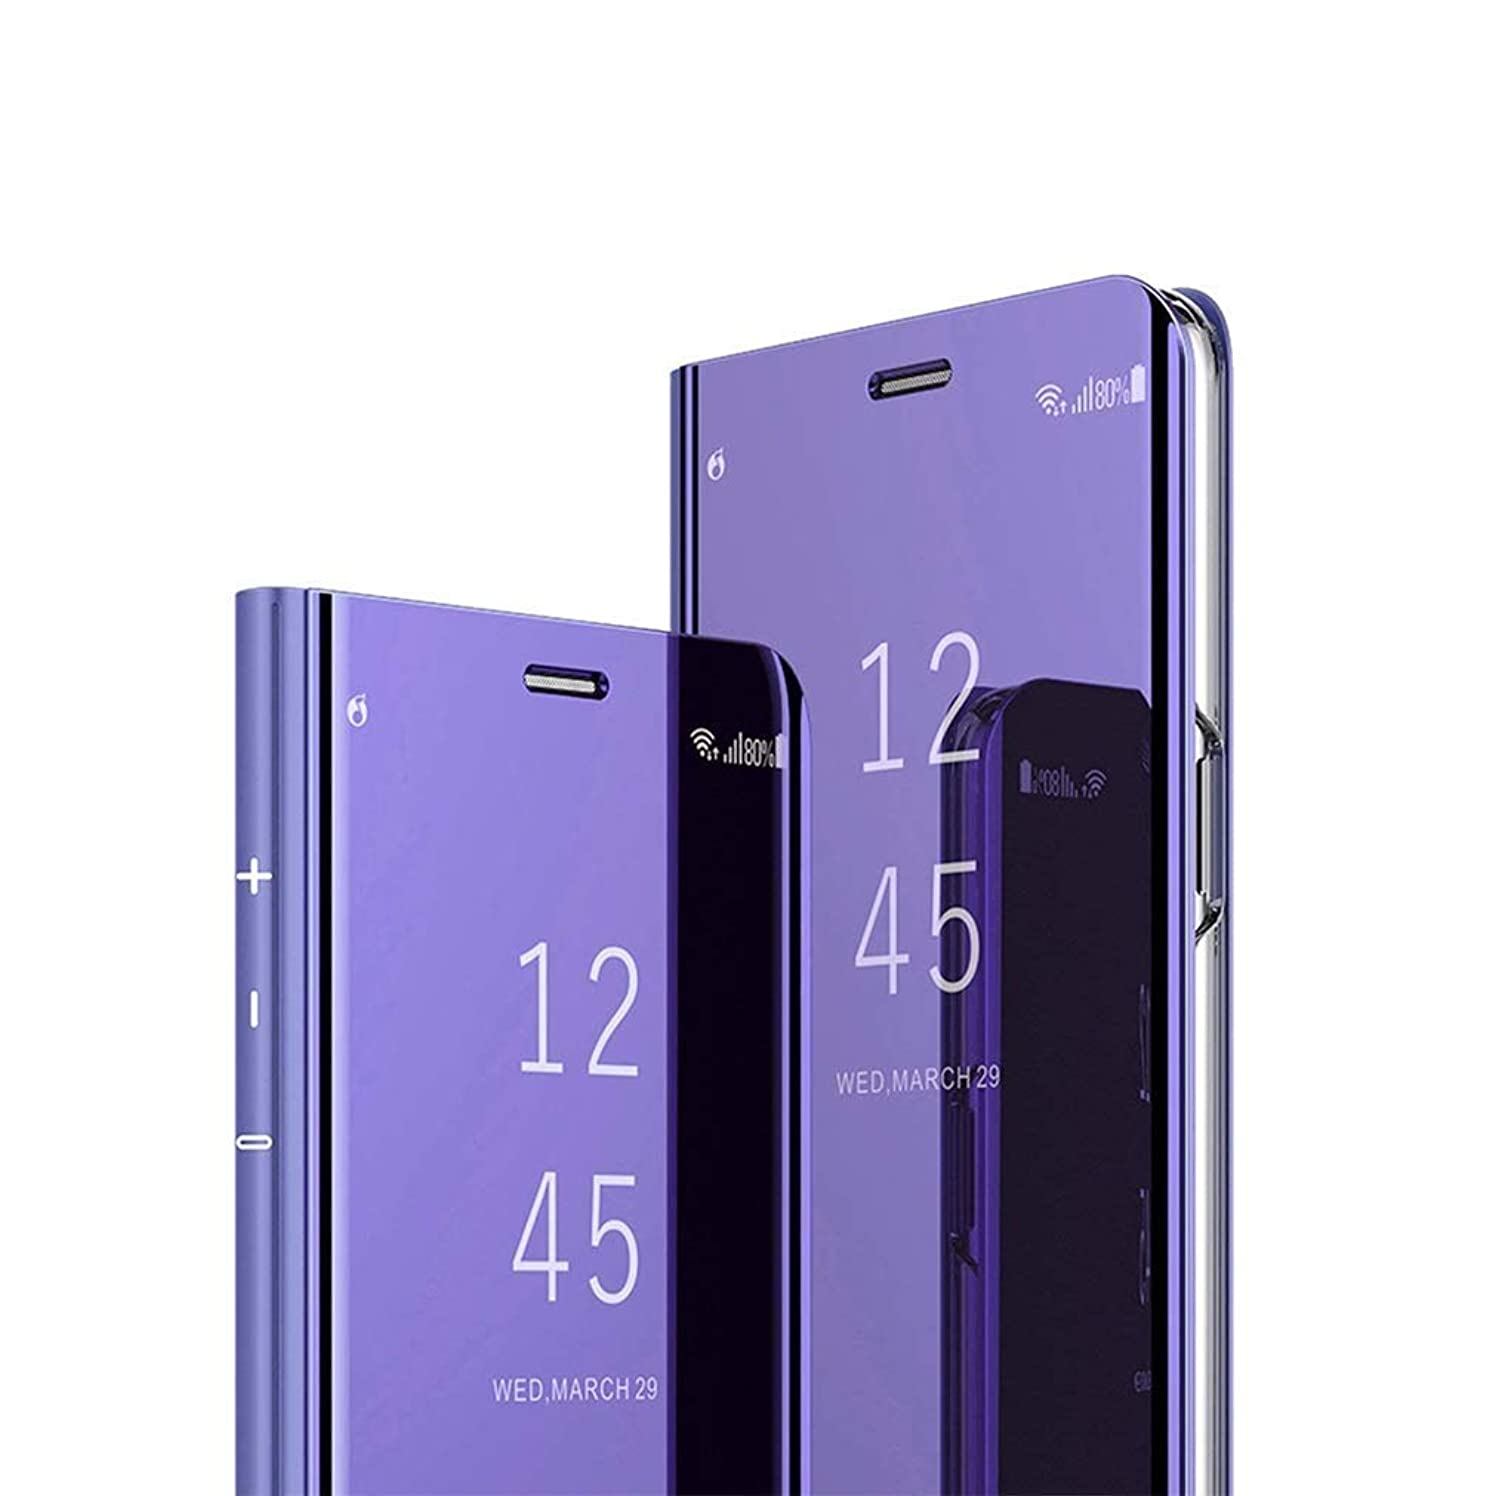 Galaxy Note 9 Case, Ankoe Luxury Translucent View Mirror Flip Electroplate Plating Stand Shockproof 360 Full Body Protective Hard PC Cover for Samsung Galaxy Note 9 (Purple)